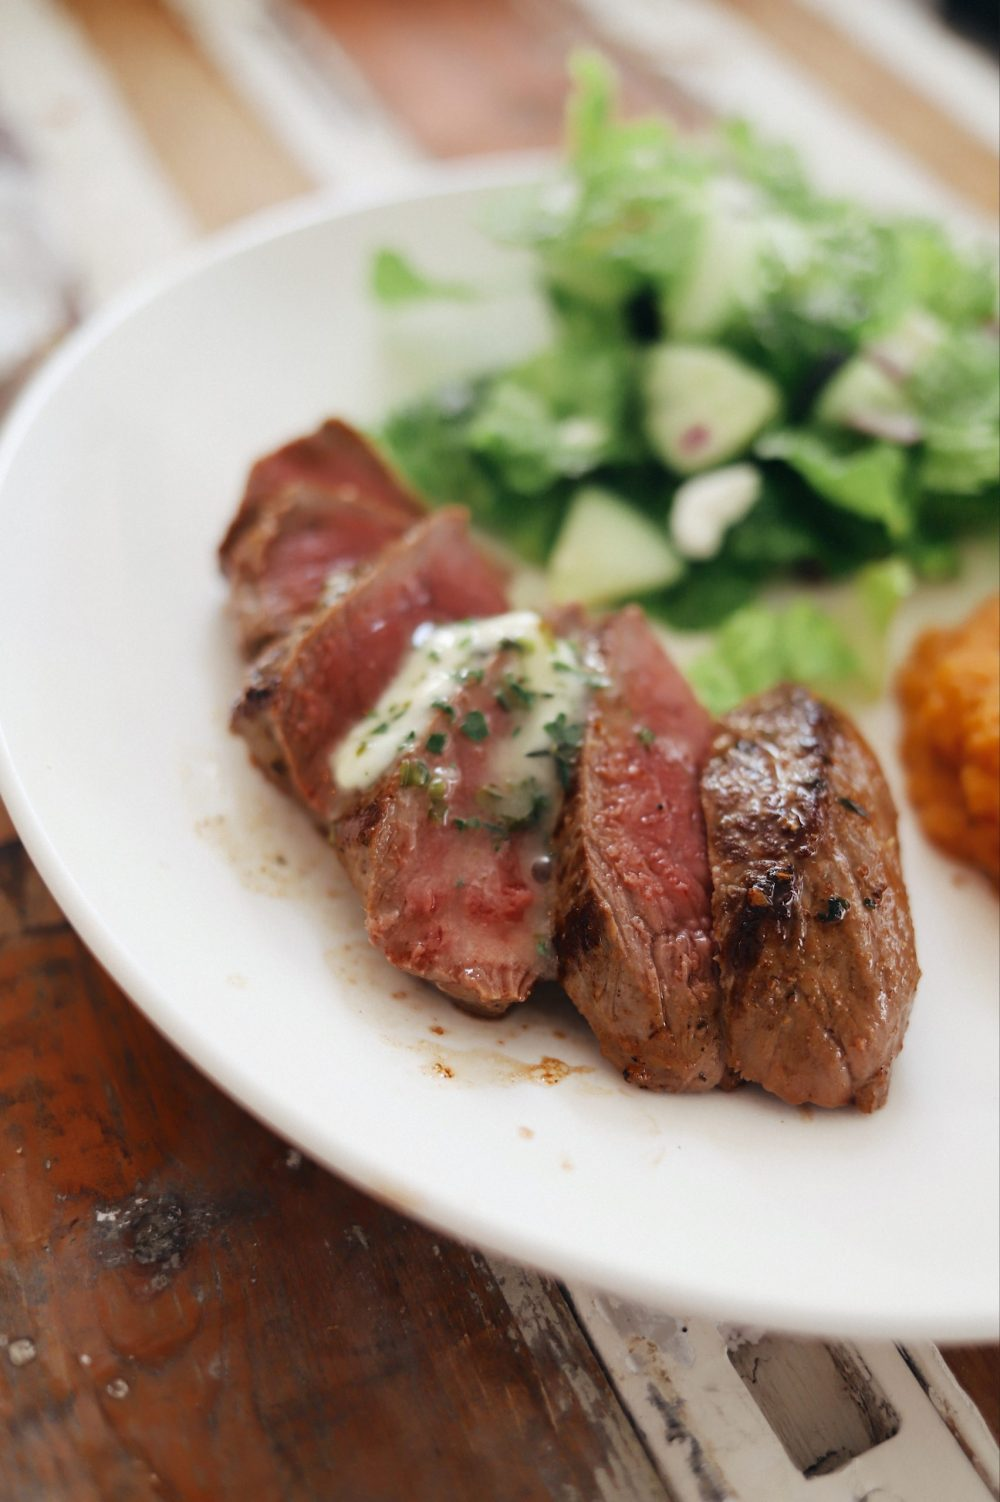 Homemade Steak Butter: How to Make an Easy Steakhouse Herb Butter for Steak  Steak Butter by popular Florida lifestyle blog, Fresh Mommy Blog: image of slices pieces of steak with melted steak butter on top.